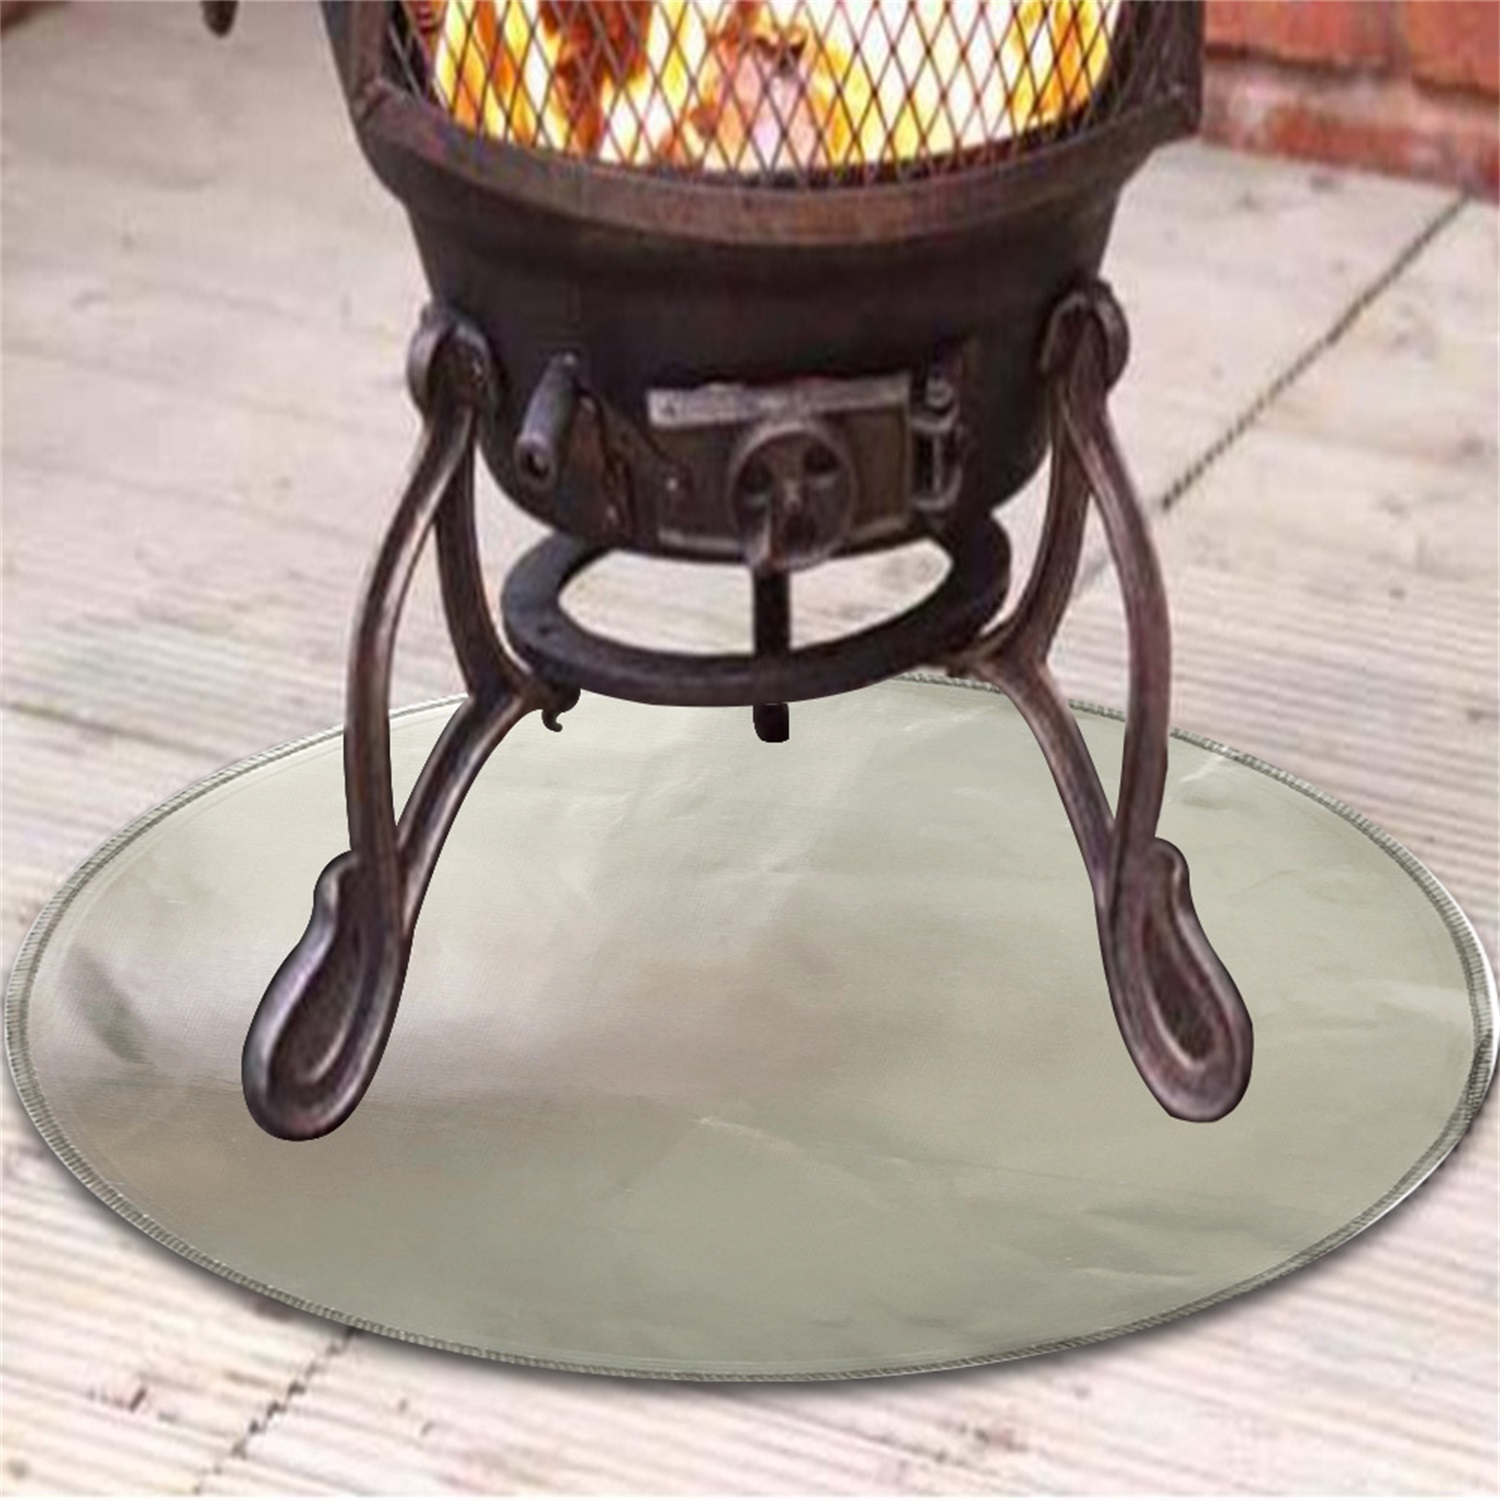 24 inch 24 Inch Round Grill And Fire Pit Mat BBQ Smoker Outdoor Patio And Grass From High Radiant Heat Charcoal Grill Gas Fire Pit 3Layer,Under Grill Mat Protector For Wood Burning Fire Pit